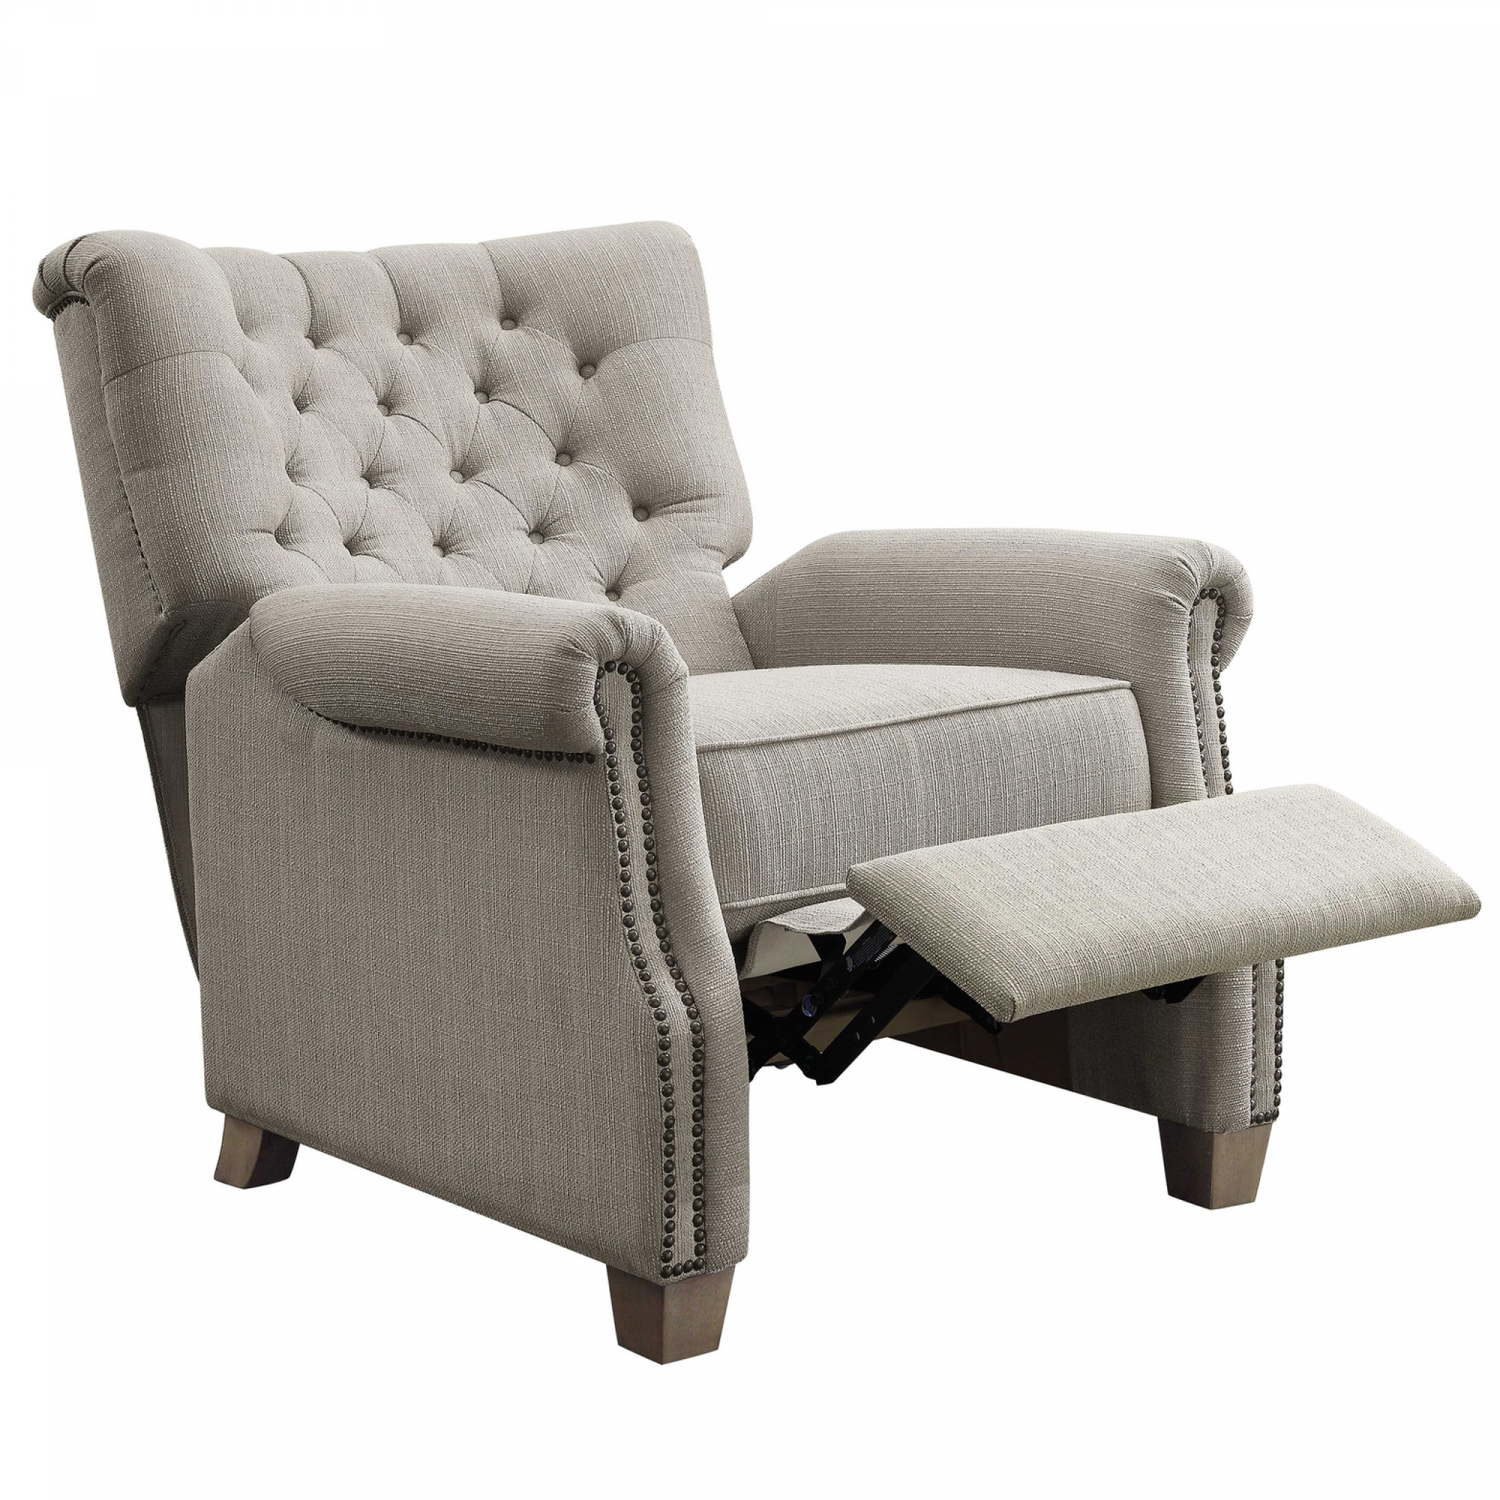 Tufted Accent Recliner Chair Push Back Armchair Lounge ...